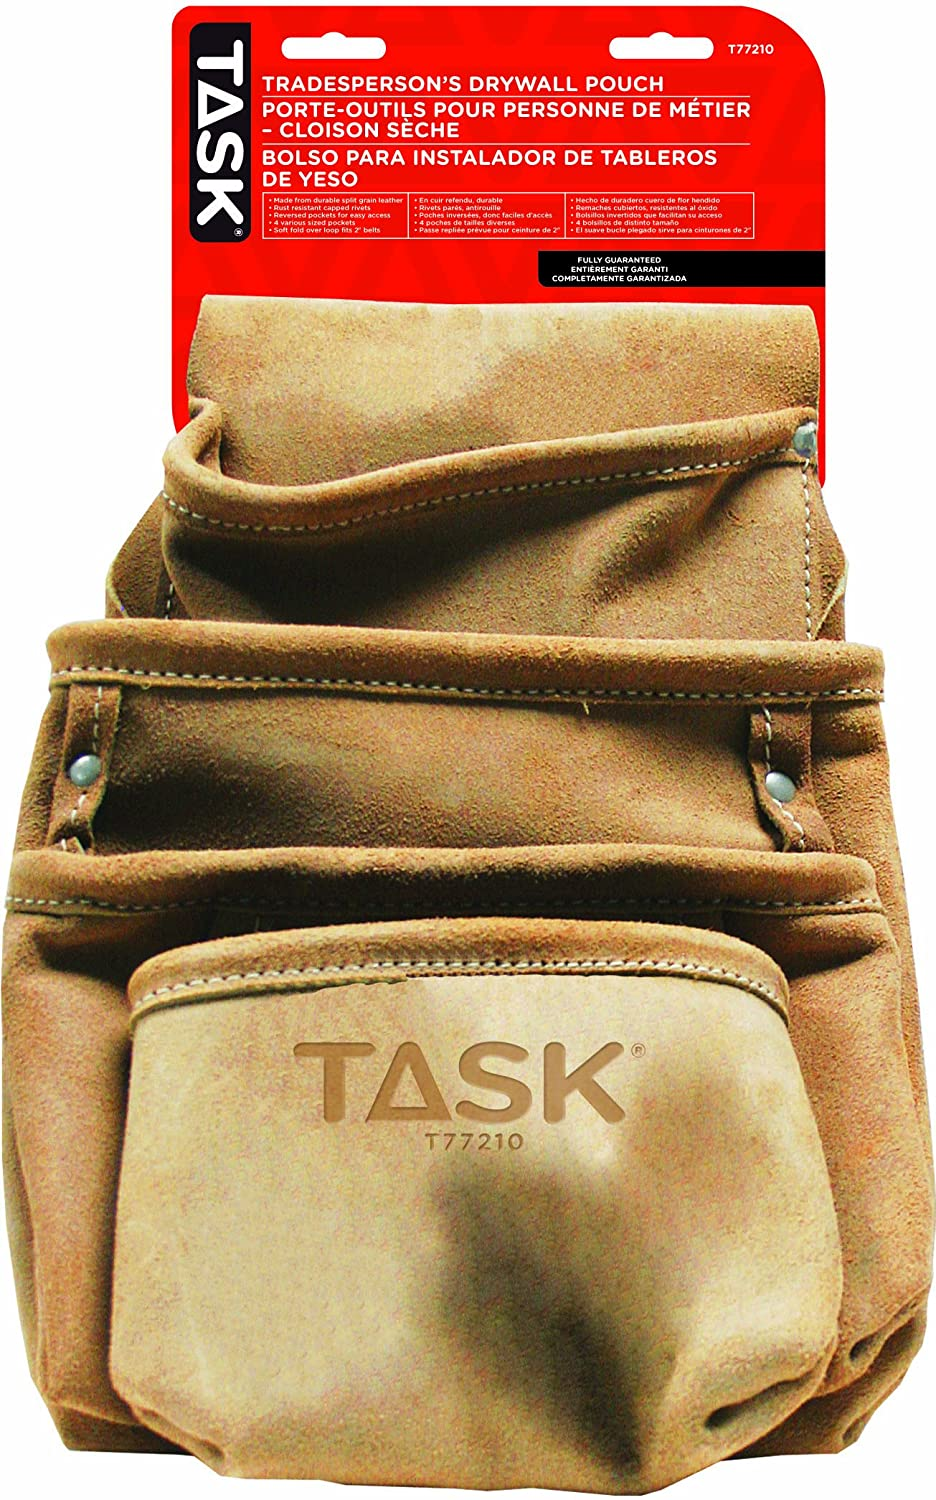 Task Tools T77207 Tradespersons Leather Nail/Tool/Drywall Pouch, 3-Pocket - - Amazon.com